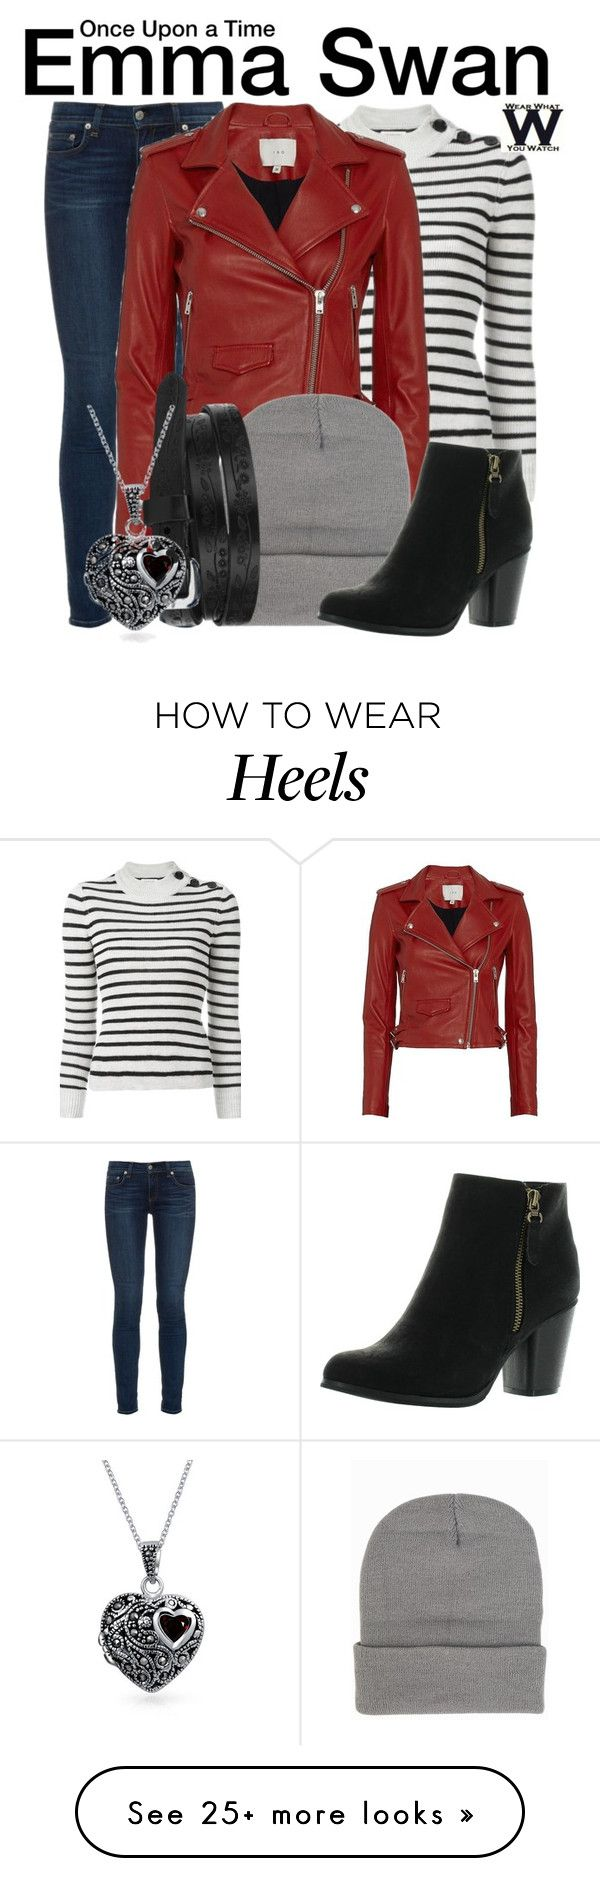 """Once Upon a Time"" by wearwhatyouwatch on Polyvore featuring rag & bone, Étoile Isabel Marant, IRO, Reneeze, Bling Jewelry, television and wearwhatyouwatch"